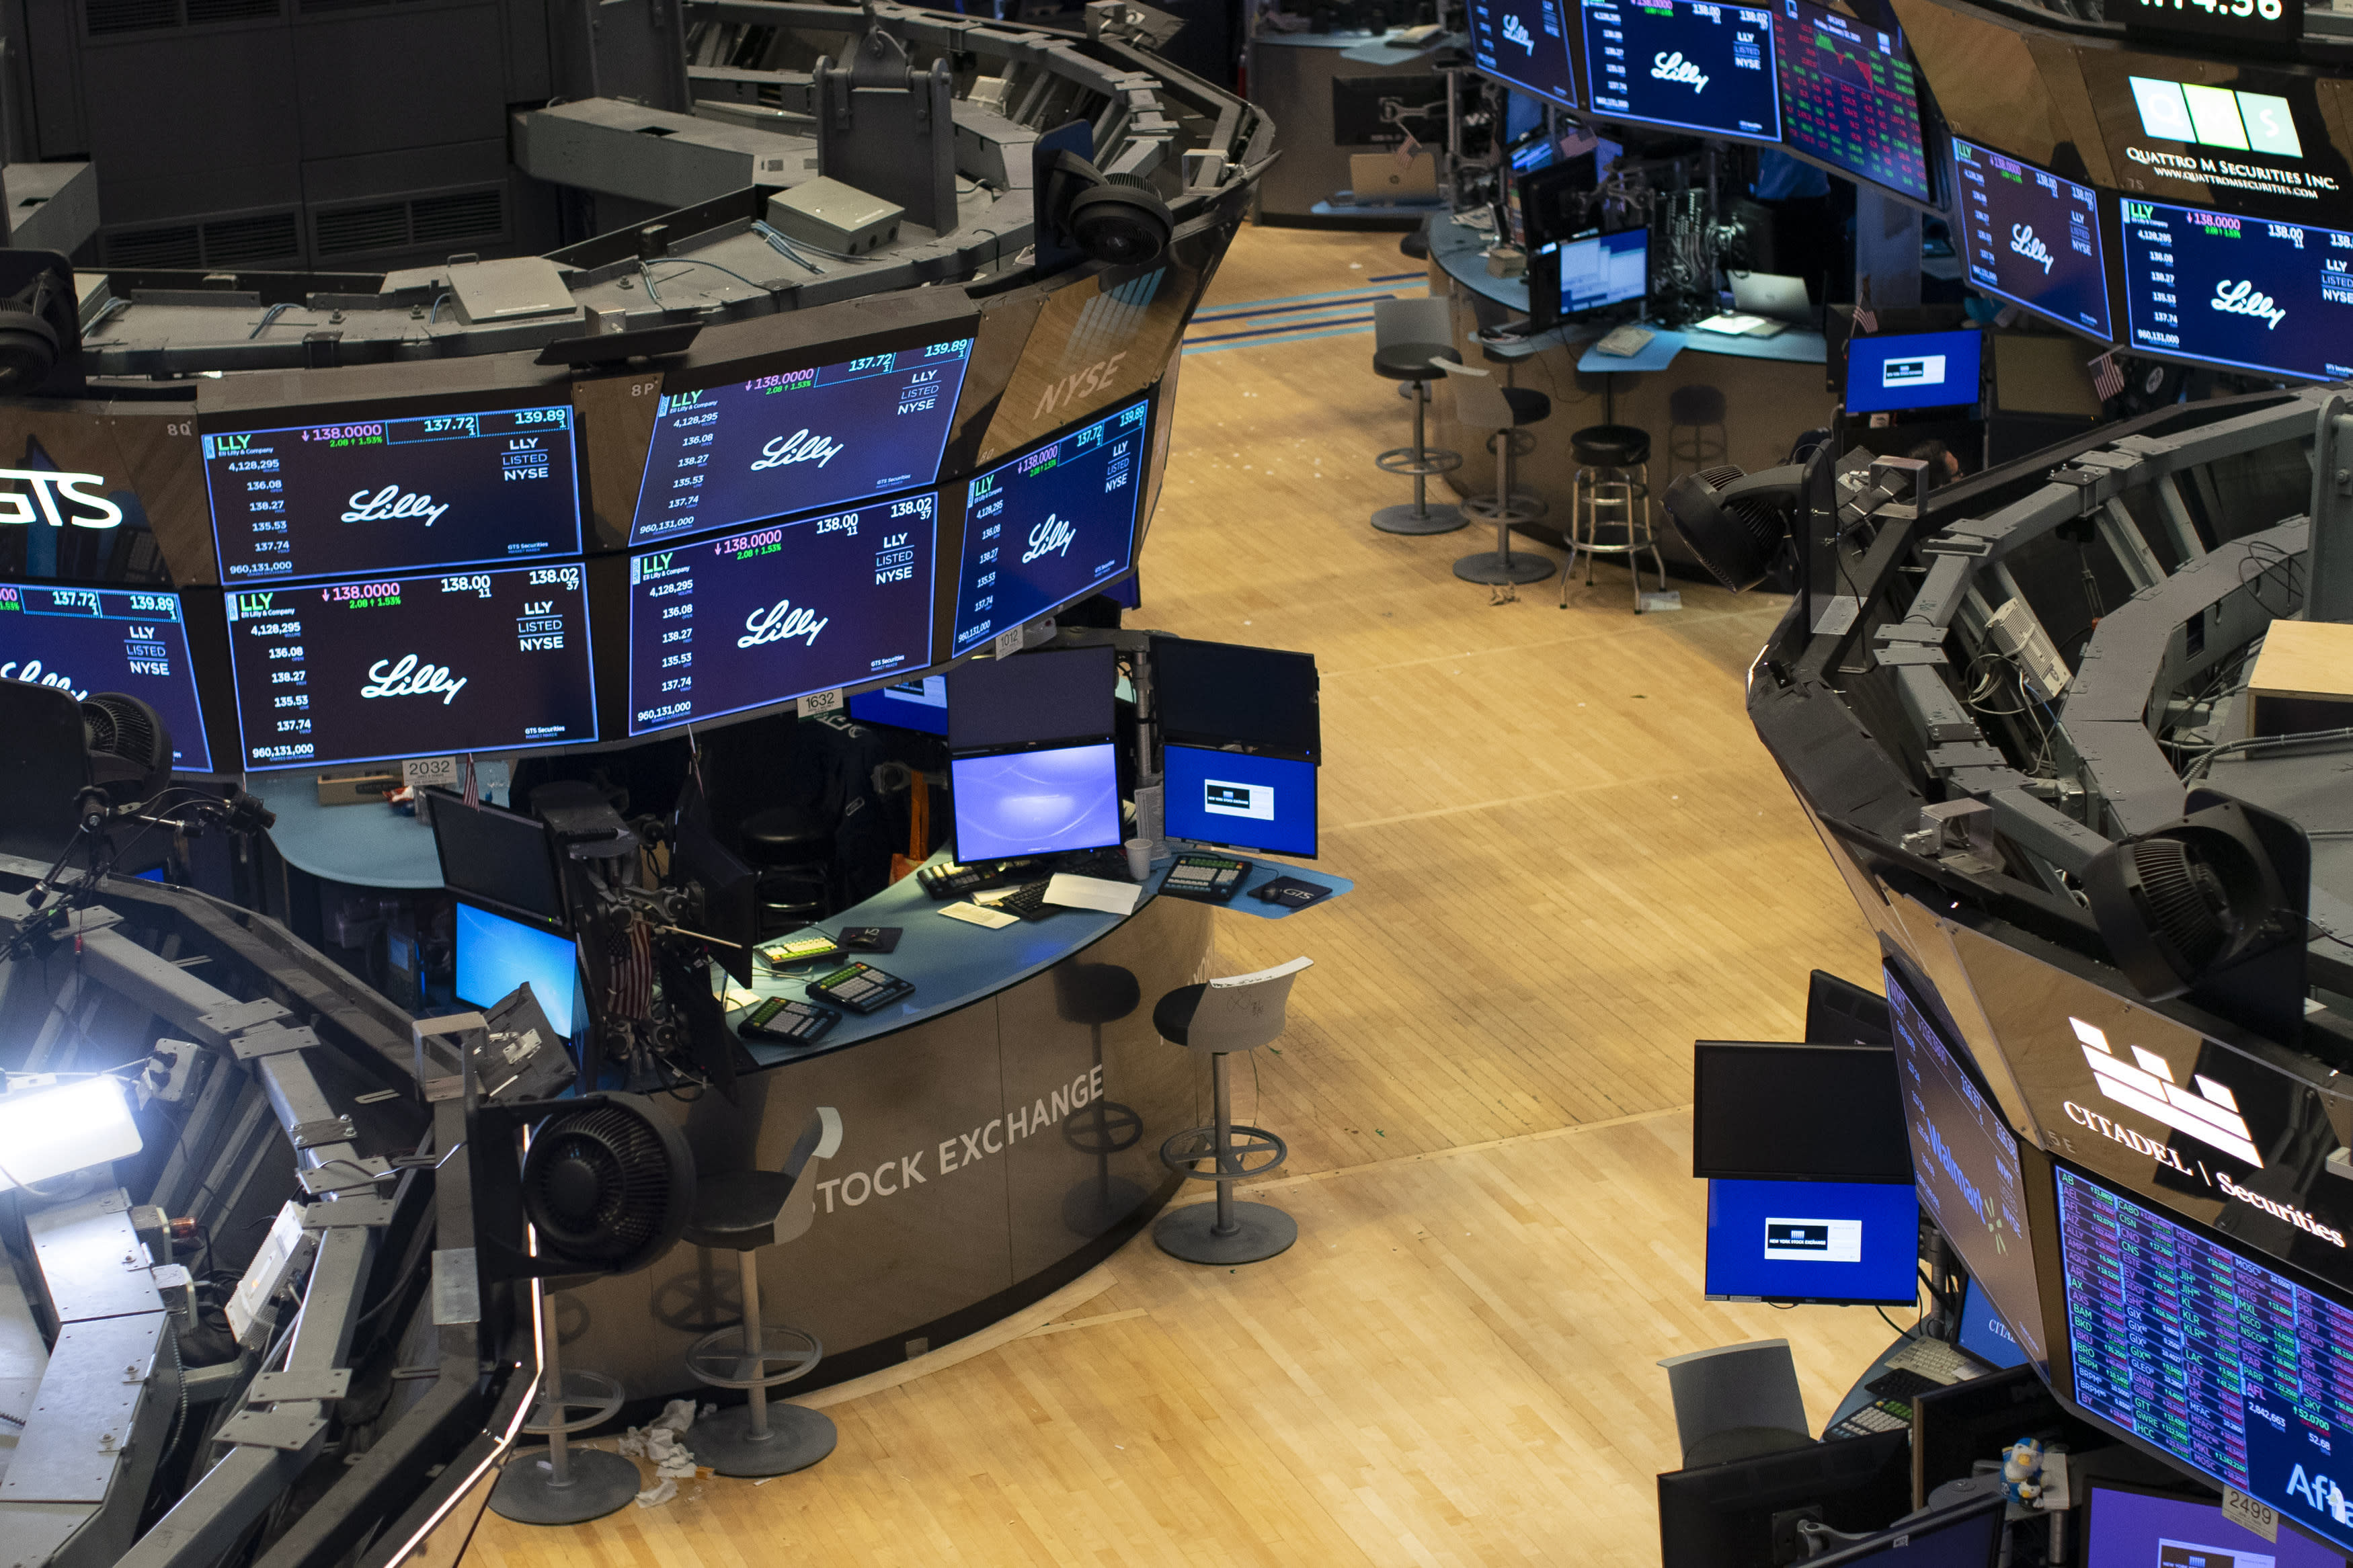 Stock futures extend rally after tech earnings